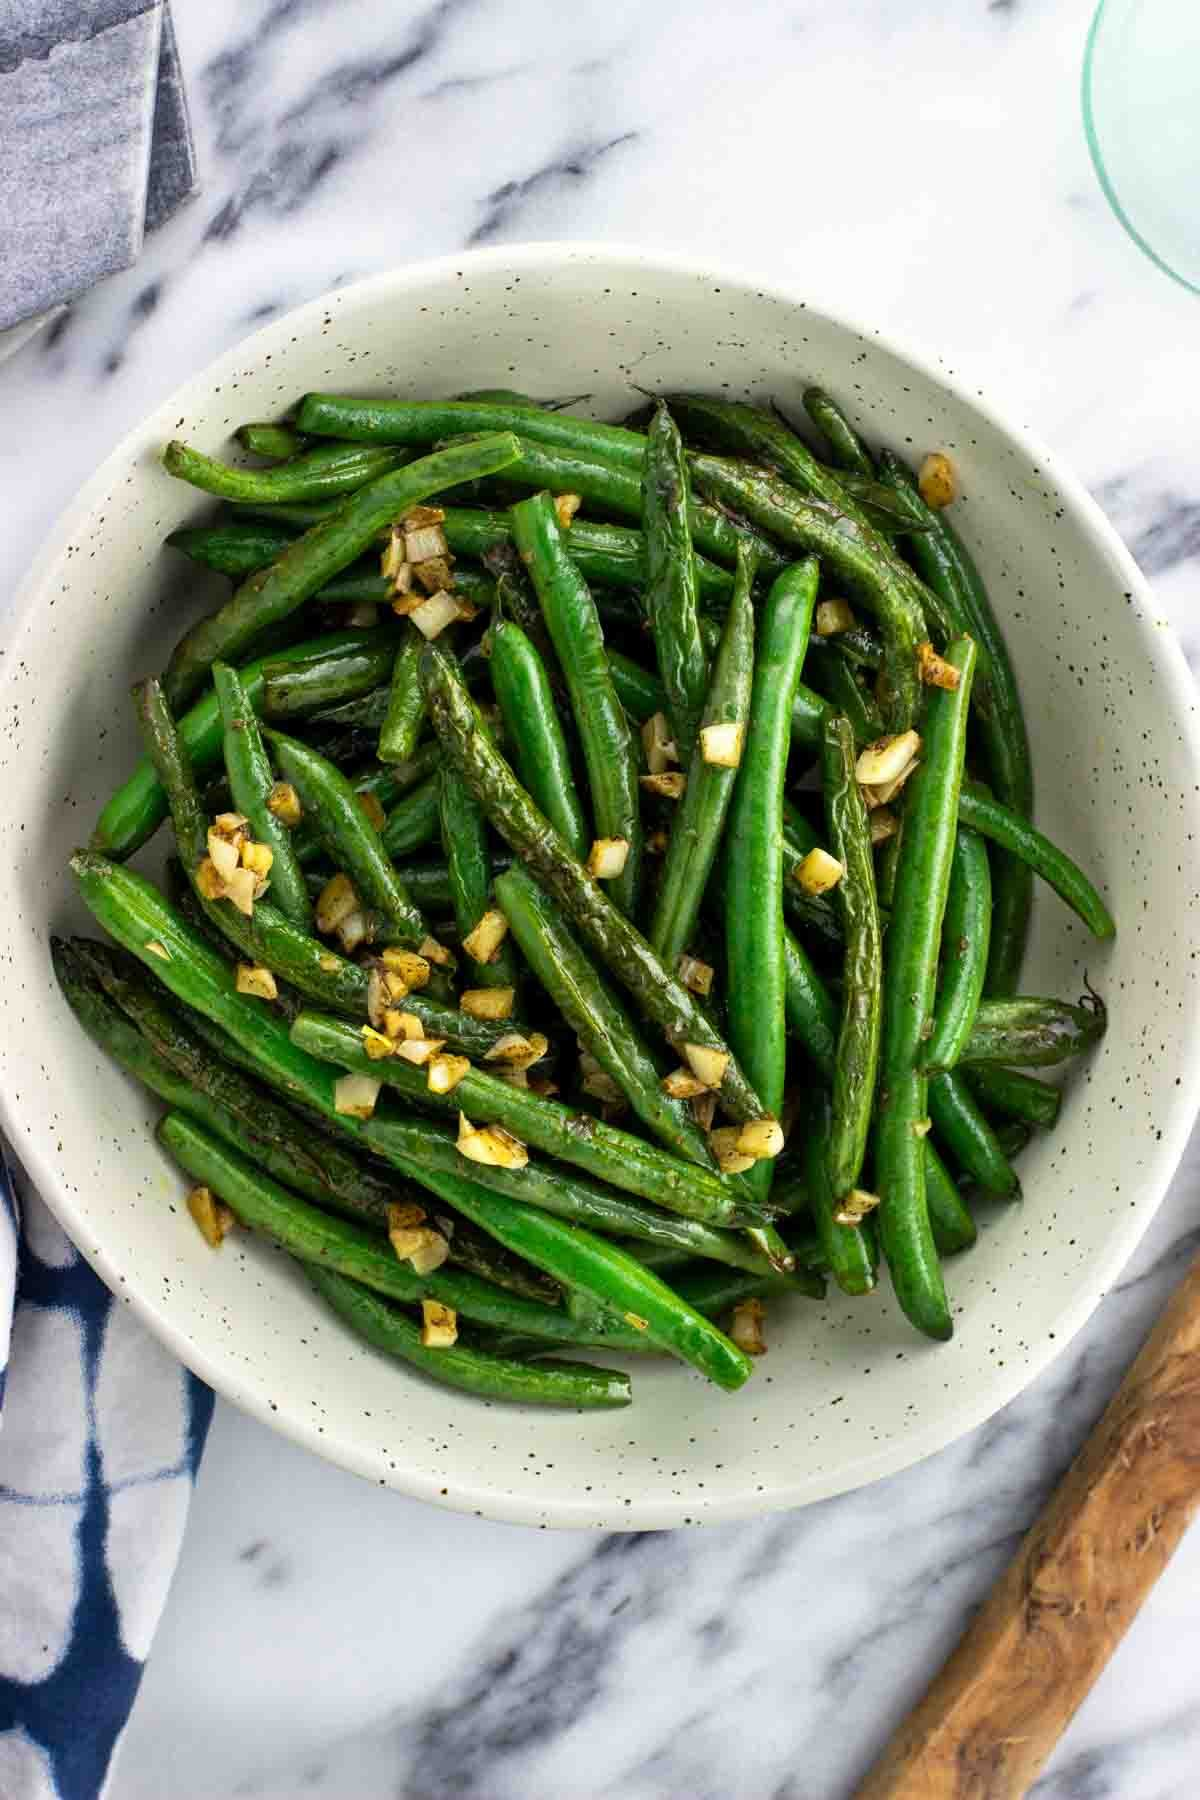 An overhead view of a ceramic bowl of sauteed green beans.